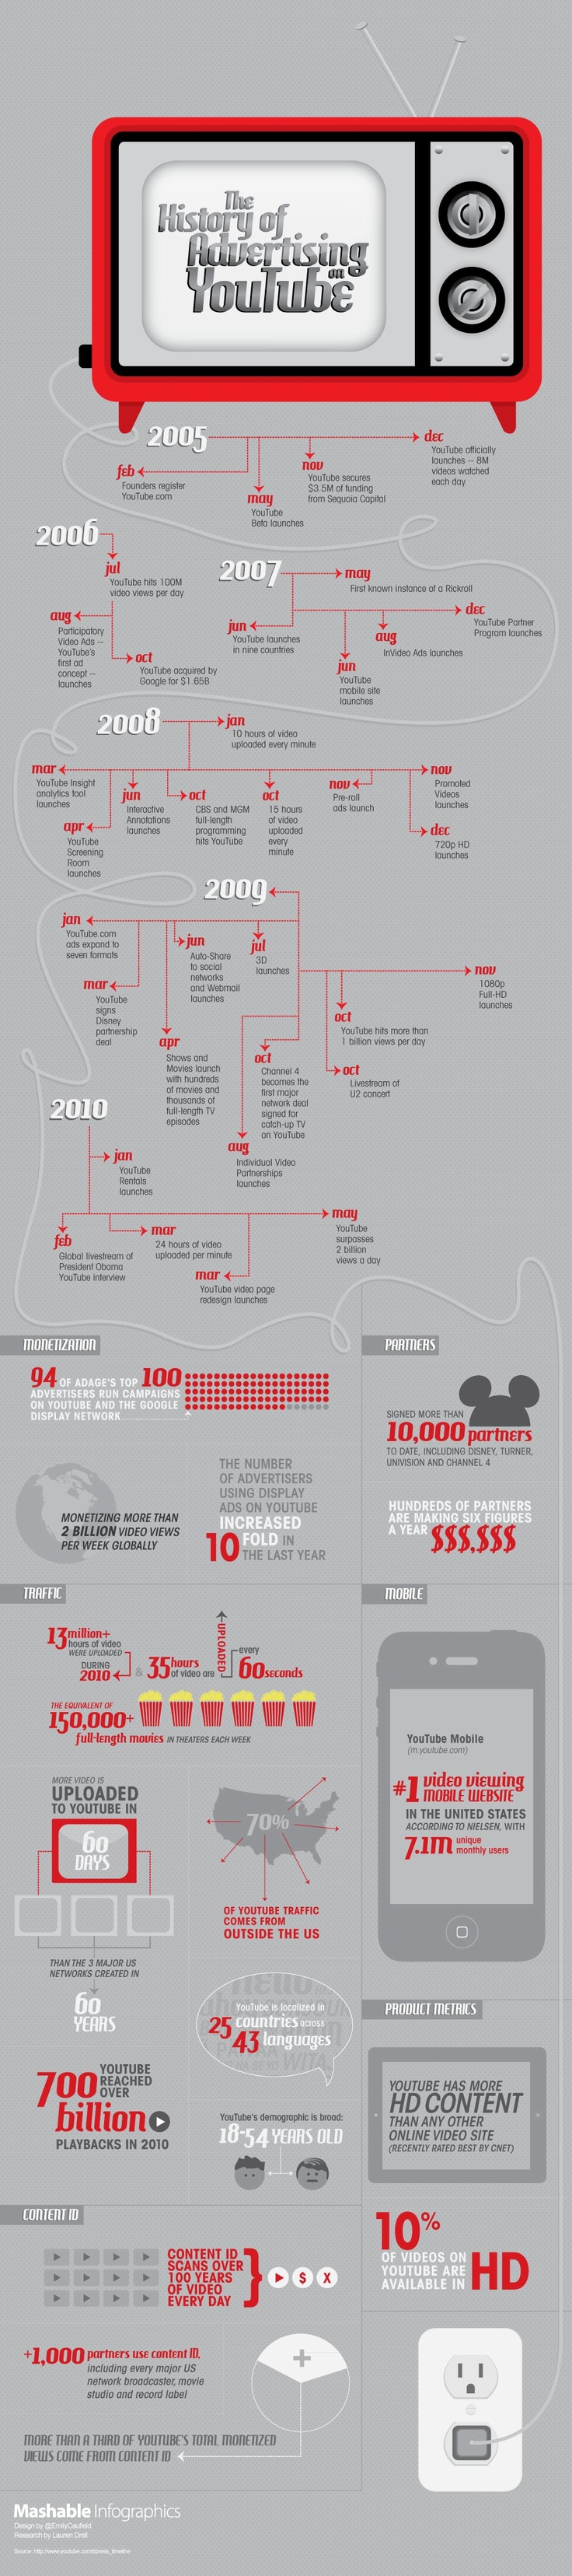 The History of Advertising on YouTube.